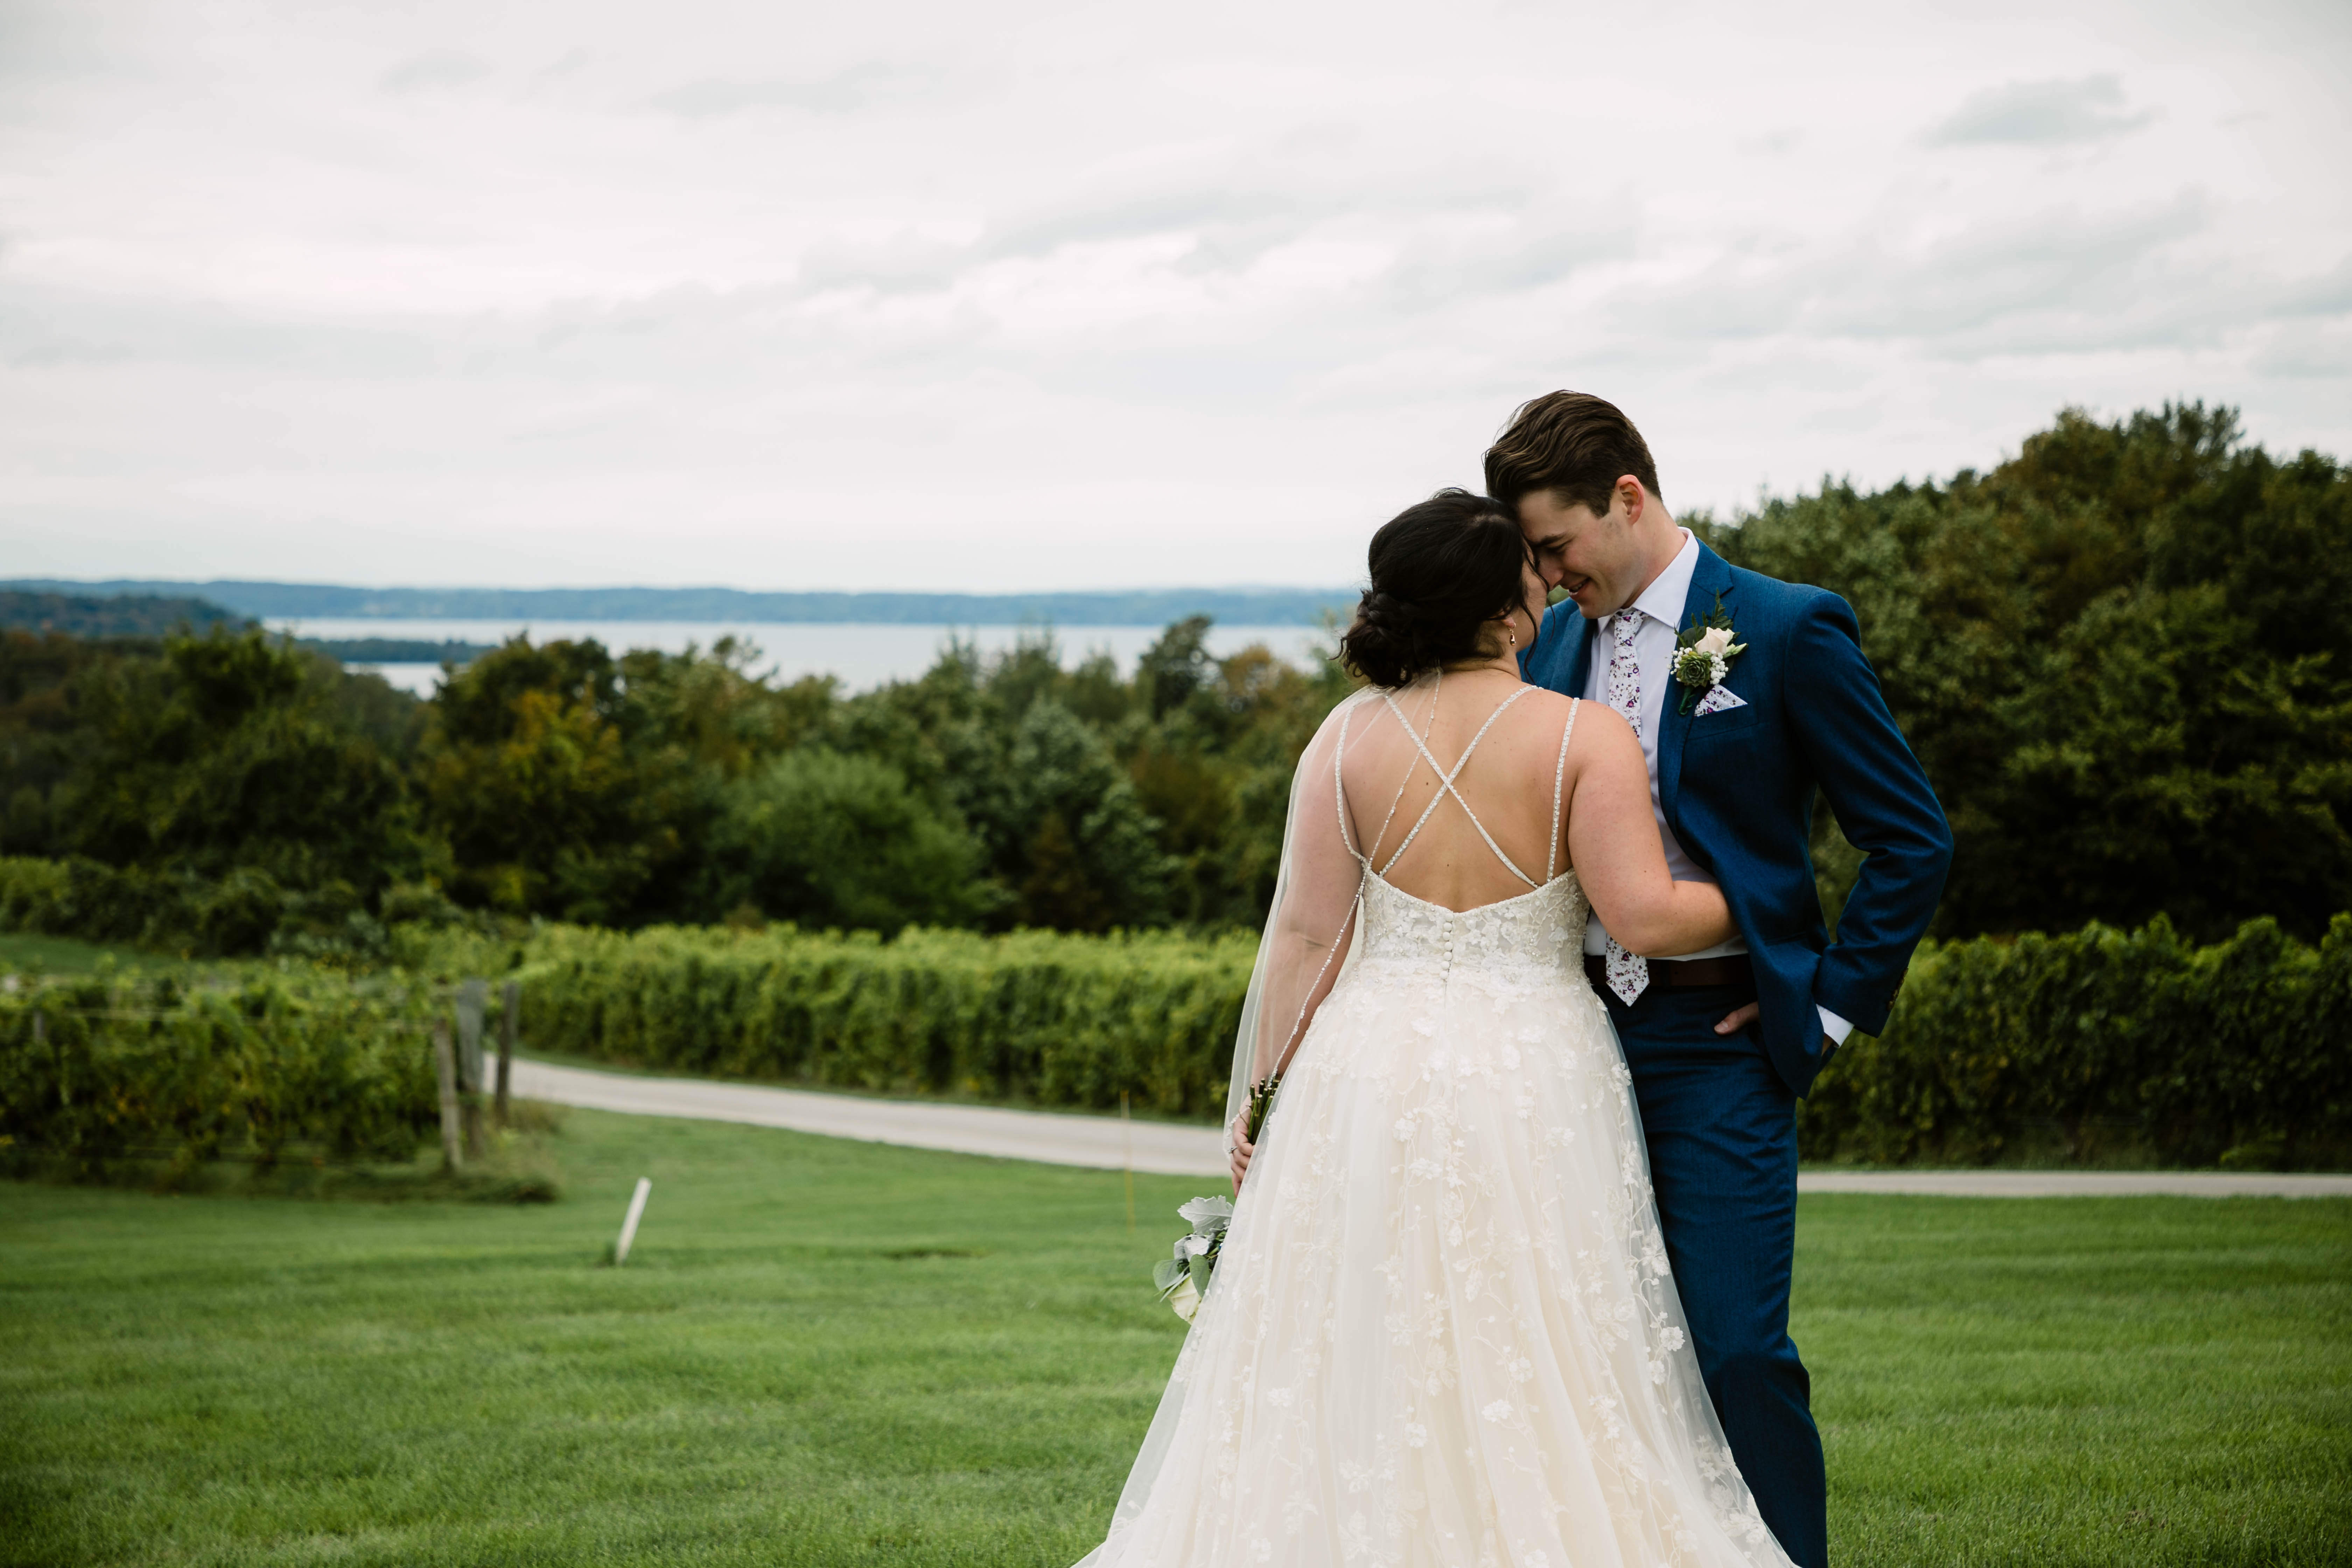 Adam + Chelsy | Traverse City, Michigan | The Peninsula Room